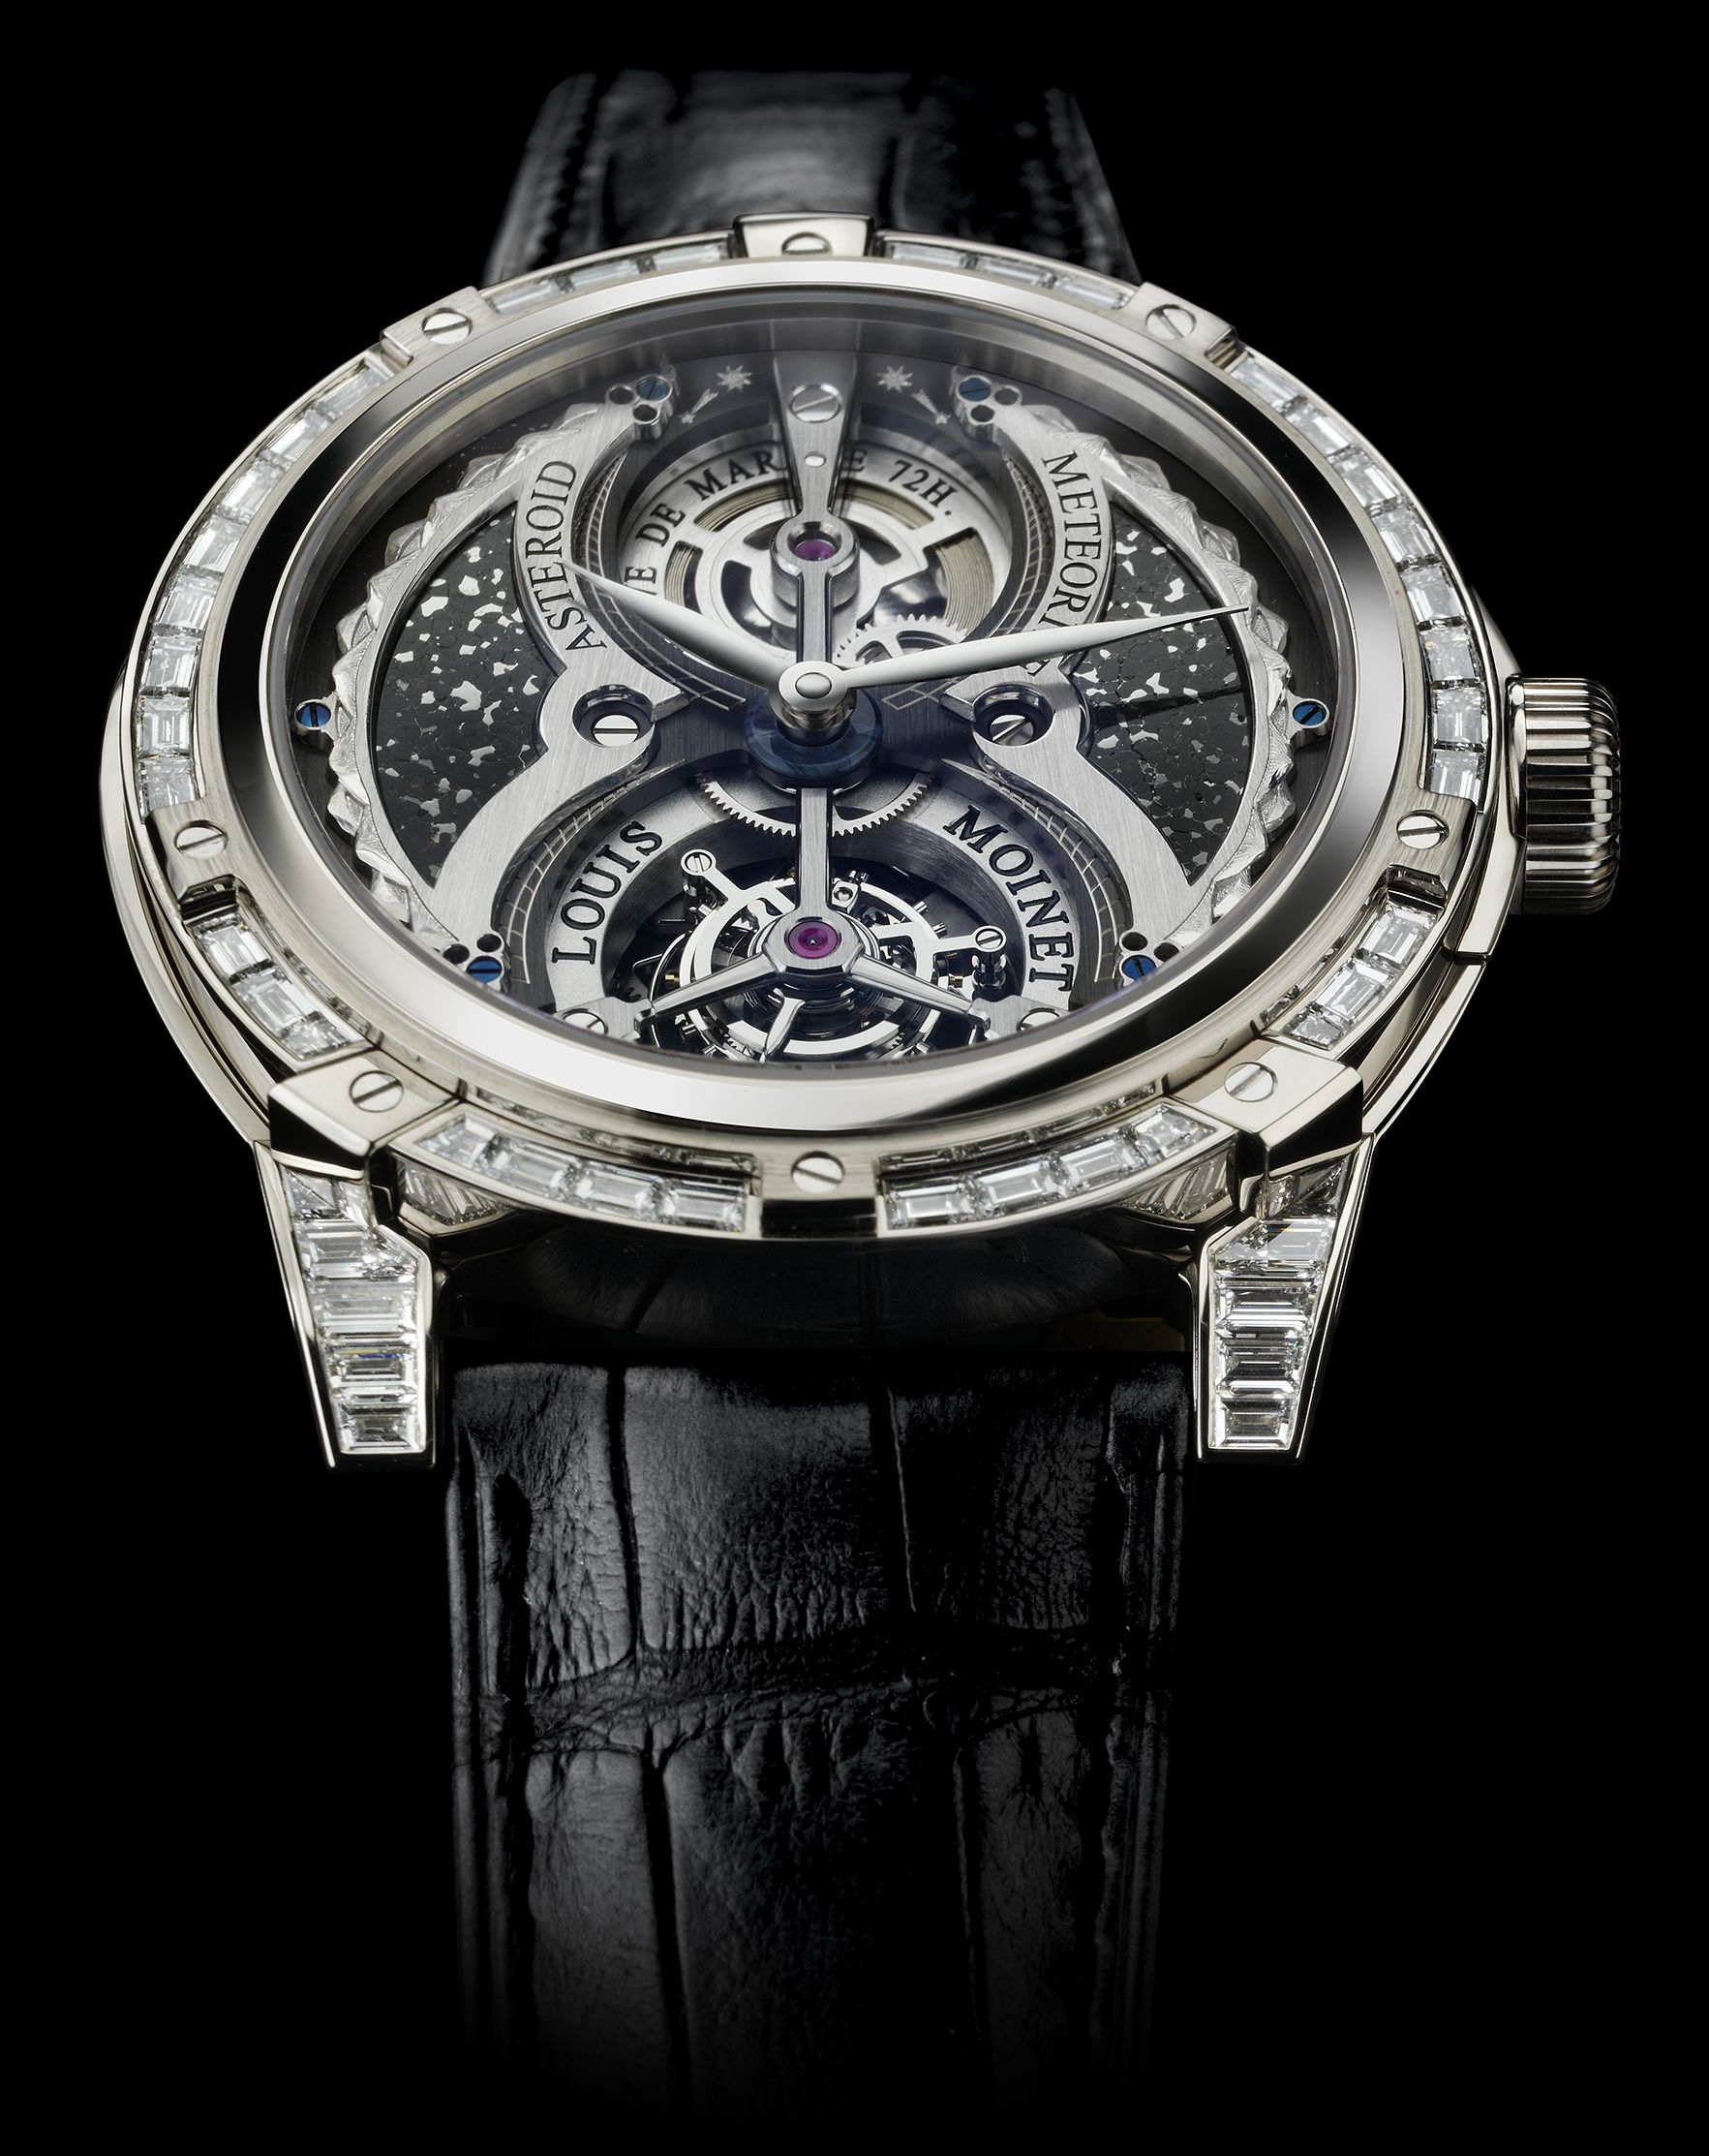 Tourbillon Asteroid with white gold case. The Tourbillon Asteroid features a rotating tourbillon cage and its dial presents a hand-crafted fragment of the mysterious Itqiy meteorite which formed close to the Sun thousands of years ago before making its way to Earth. For more information, please visit: http://www.louismoinet.com/collection-tourbillon-asteroid-p29.php